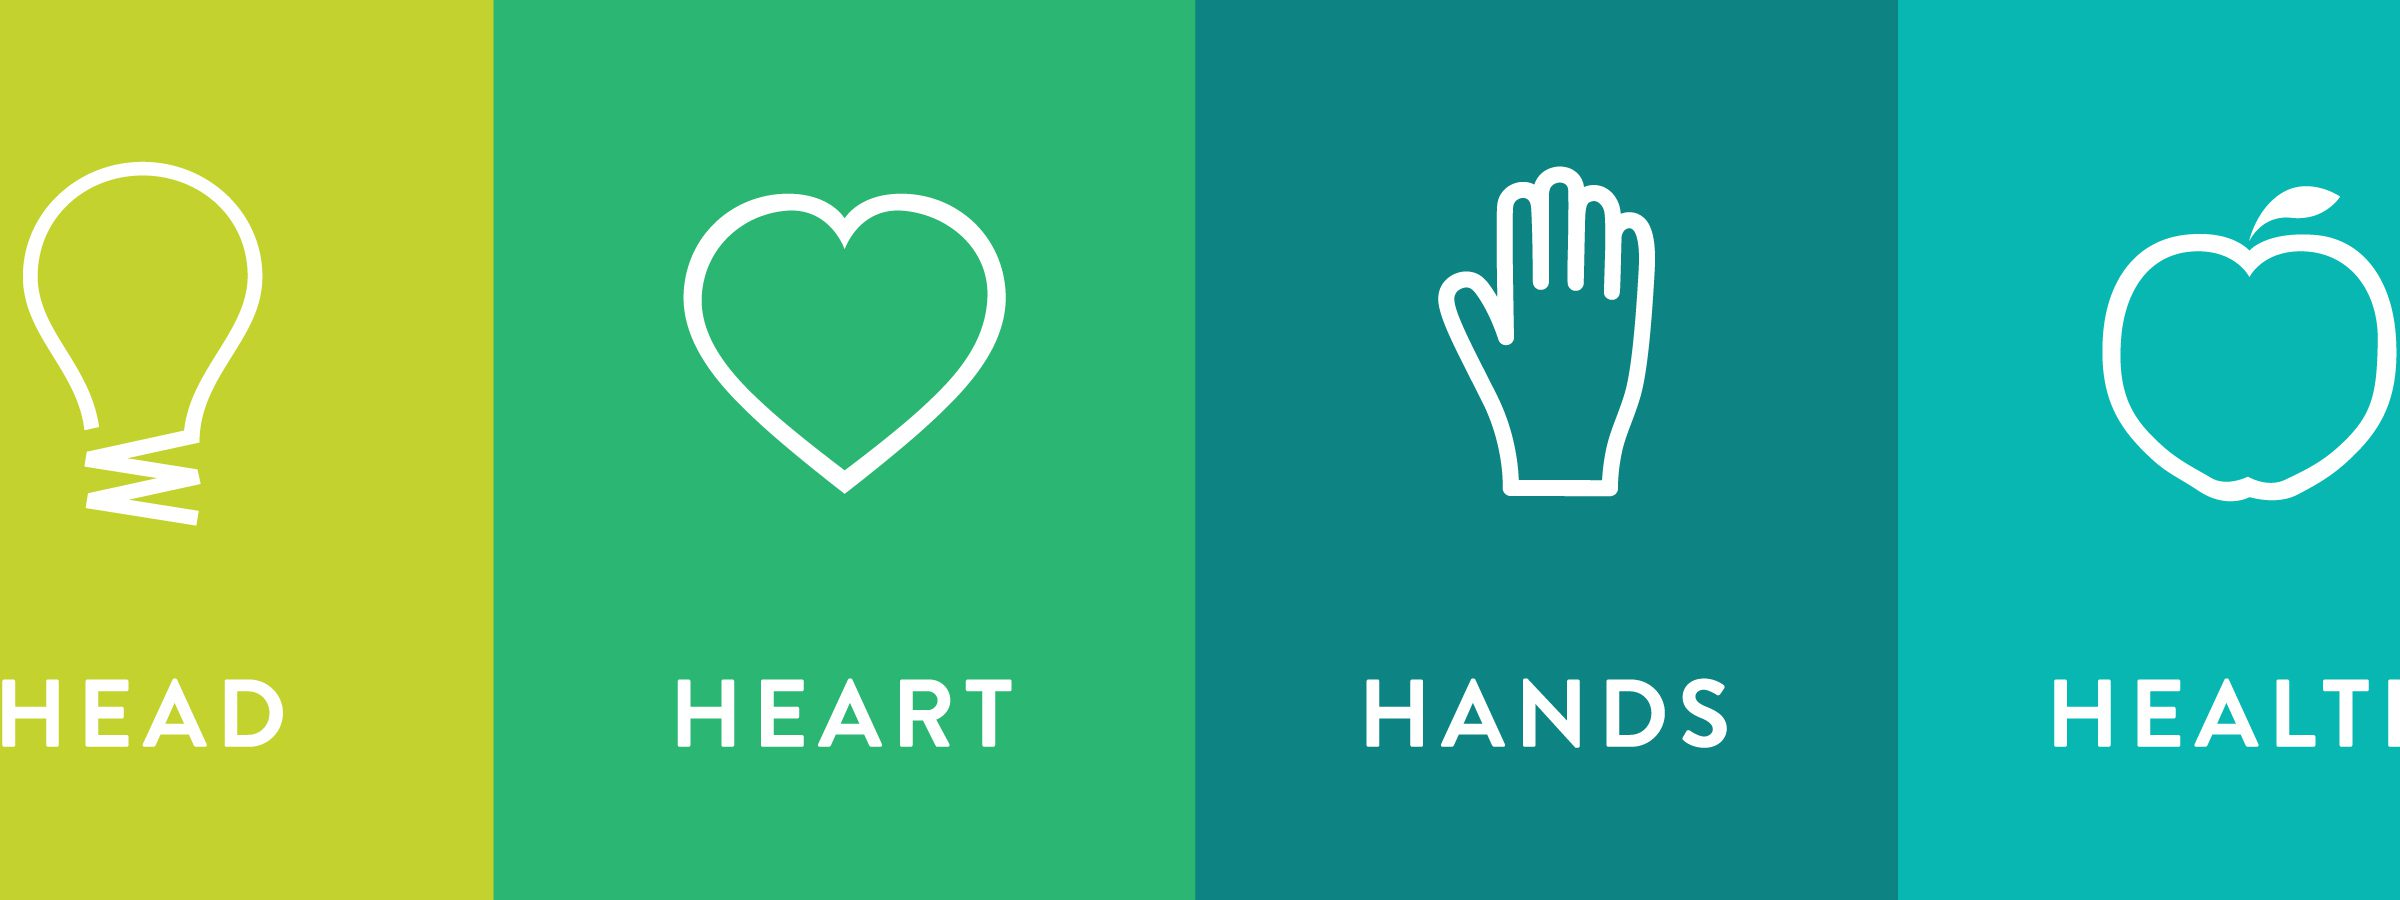 Head Heart hands health banner